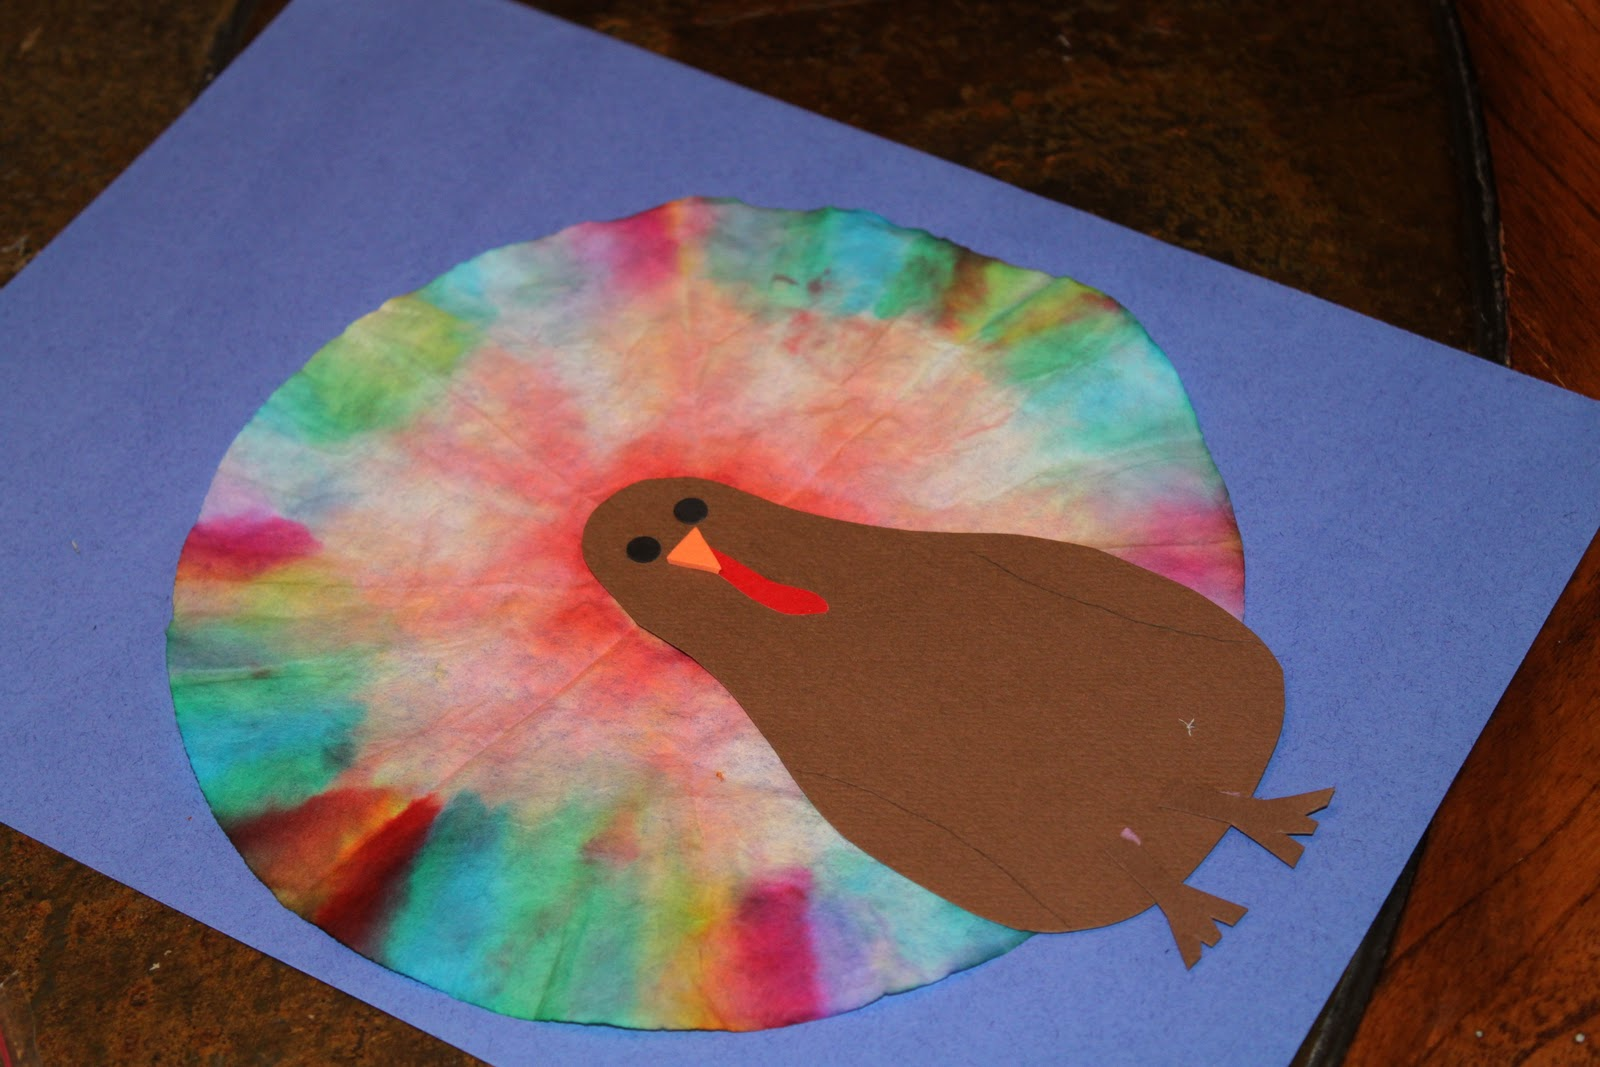 How to make coffee filter tie dye turkeys for November arts and crafts for daycare